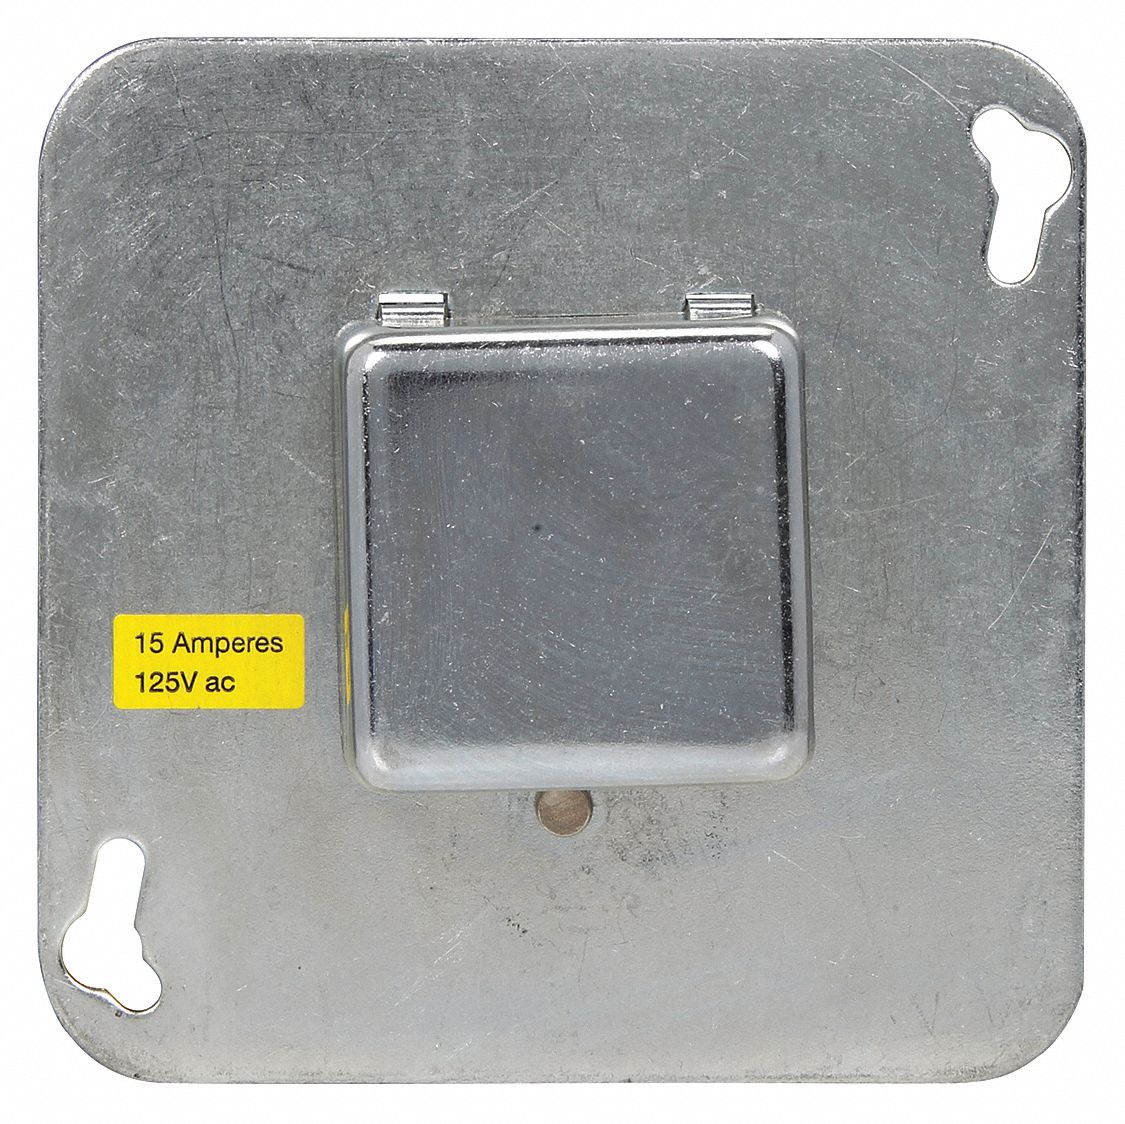 hight resolution of plug fuse box cover unit 4 square box type 15 amps ac 125vac voltage